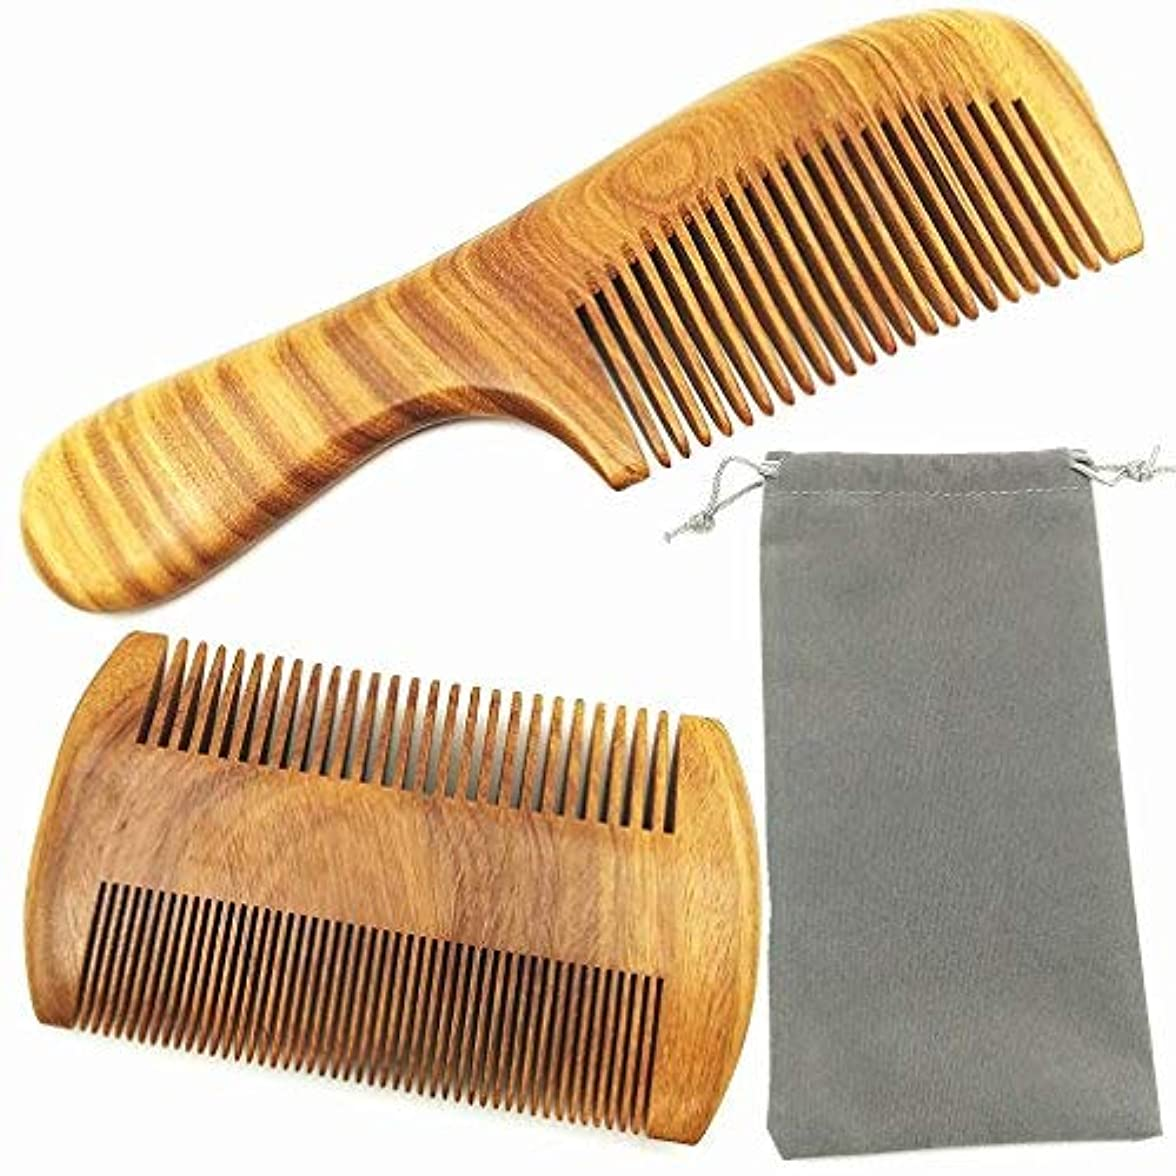 Hair Combs ? Handmade Natural Aroma Green Sandalwood Wooden Comb Set - No Static Fine Sides & Wide Tooth Hair...